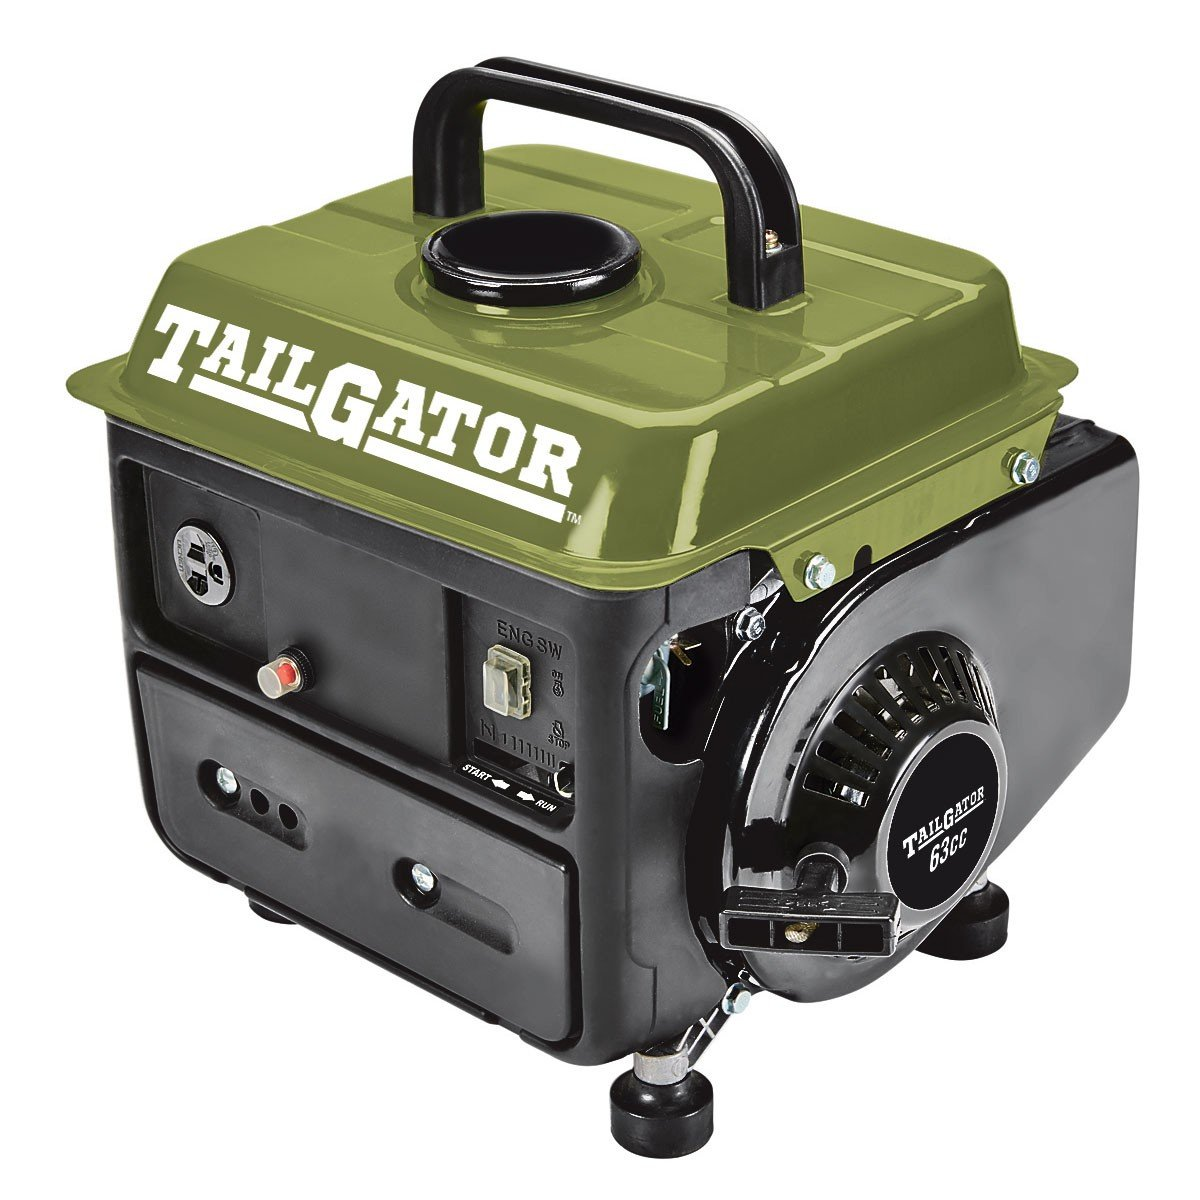 Tailgator 63025 630253 2 Cycle Gas EPA CARB Portable Generator